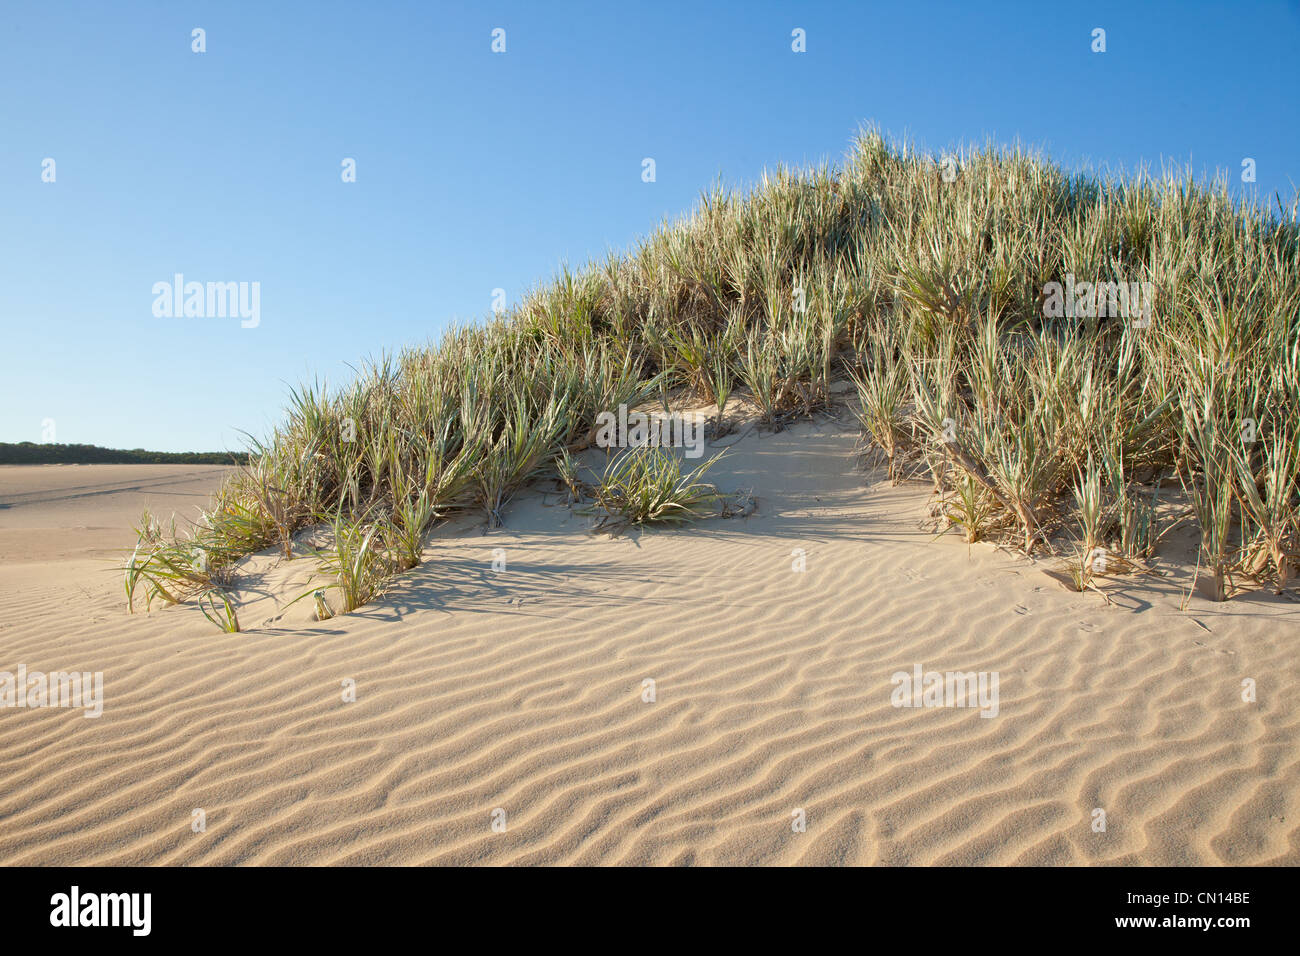 Dune grass in a sand hill. Eyre Peninsula South Australia - Stock Image